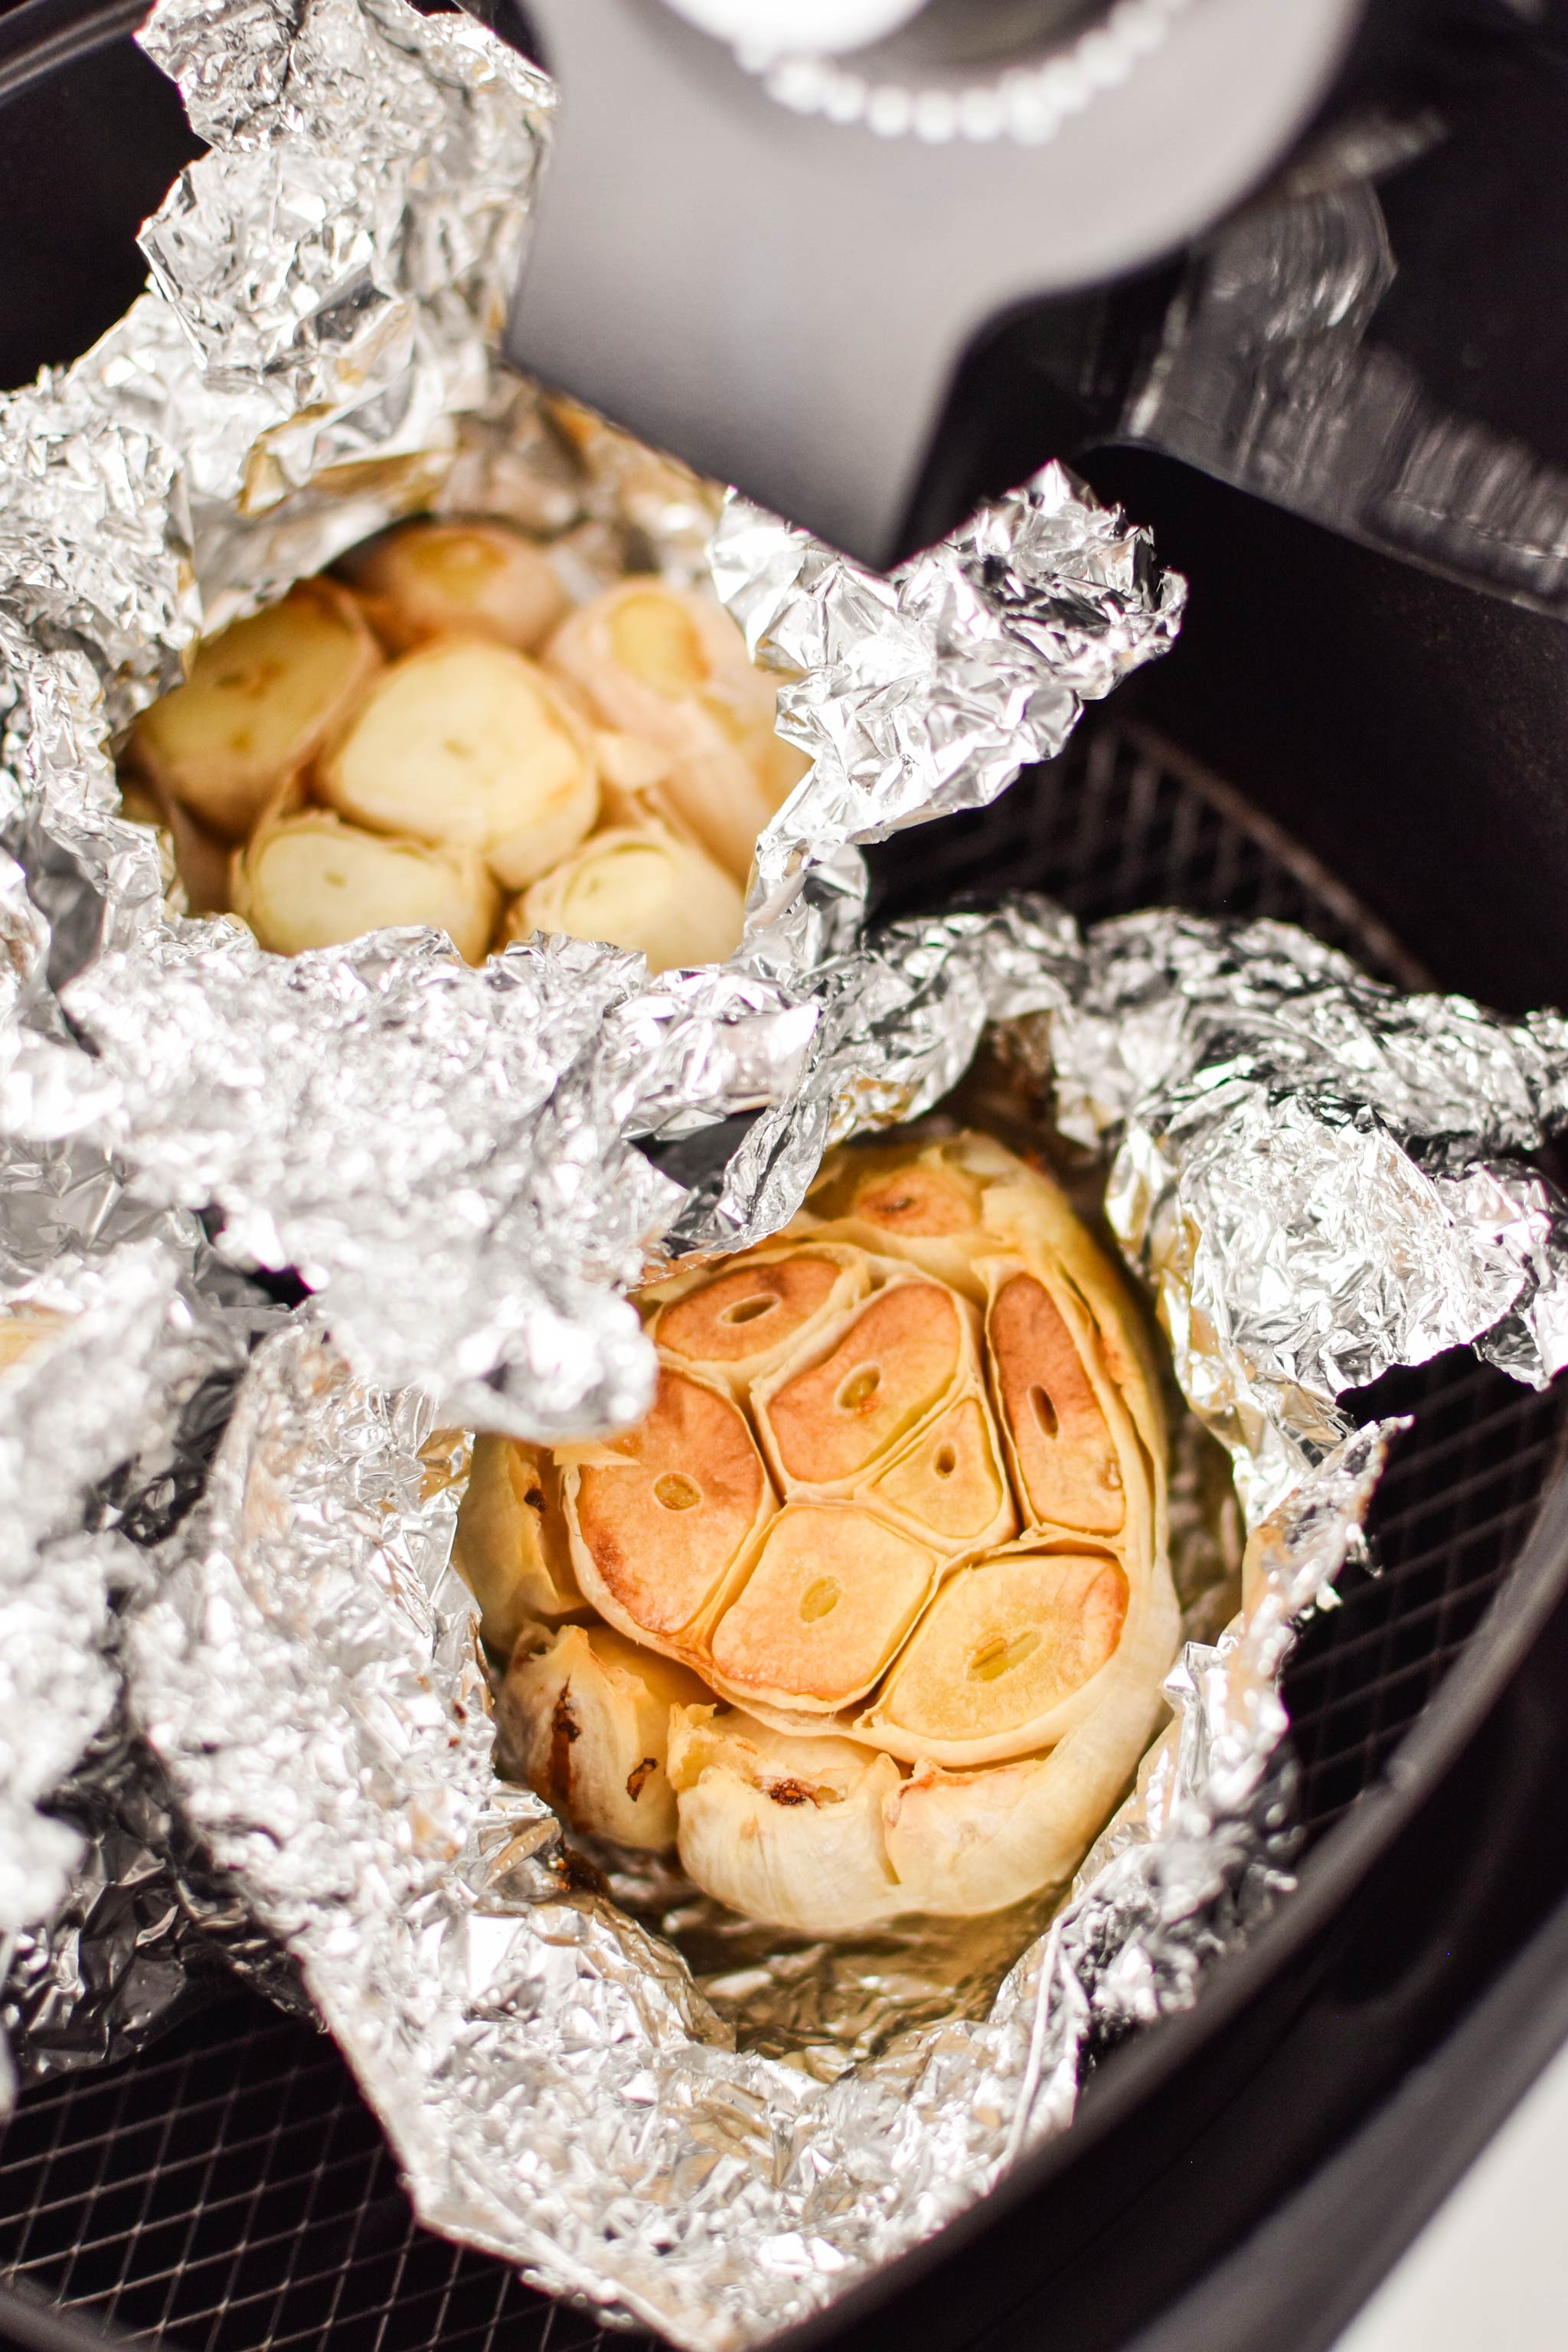 How to roast garlic in the air fryer